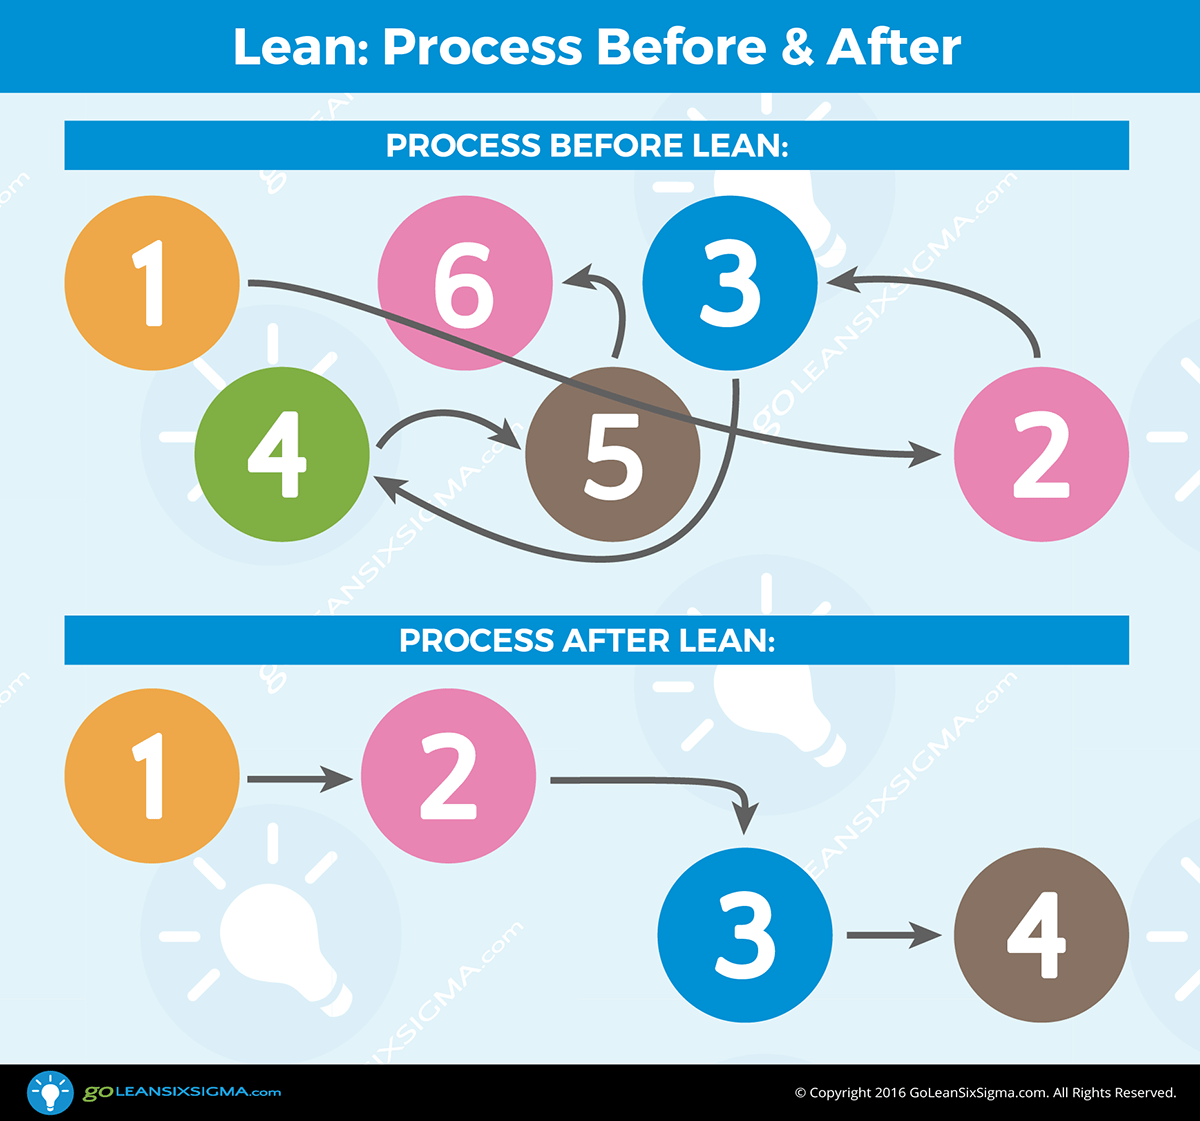 Lean-Before-After_GoLeanSixSigma.com